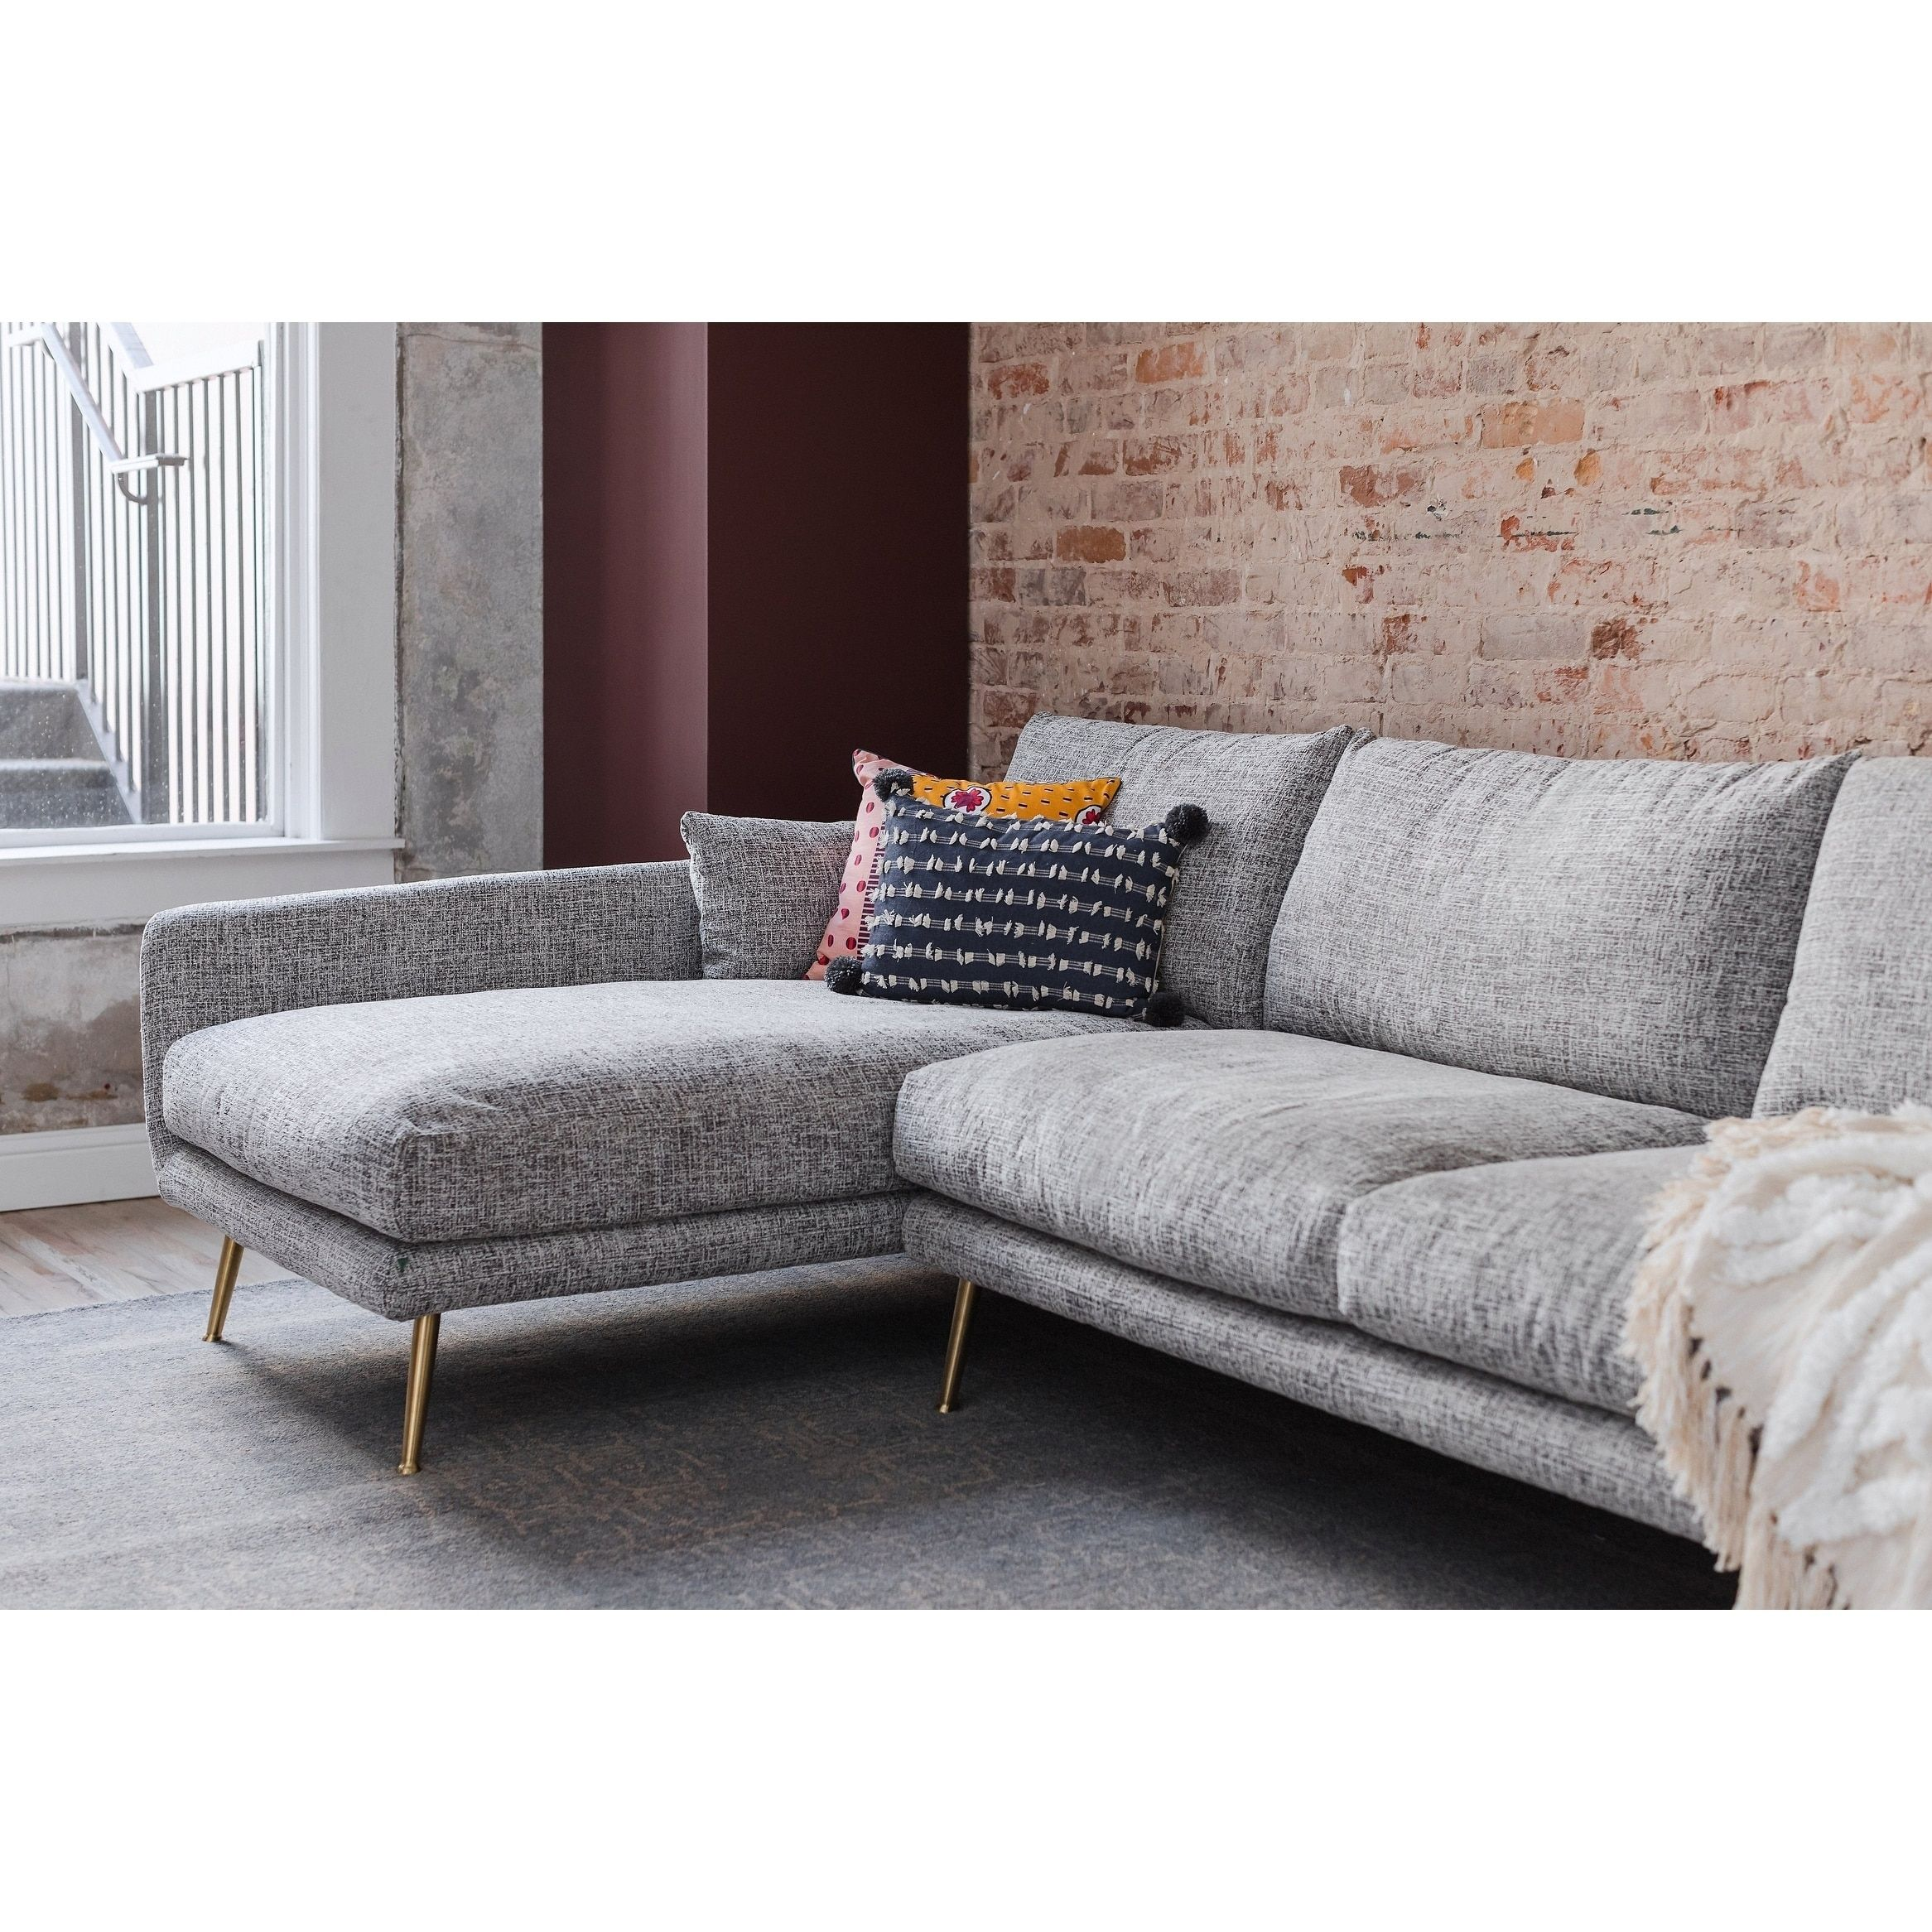 Stupendous Hayley Grey Upholstered Mid Century Modern Sectional Sofa Squirreltailoven Fun Painted Chair Ideas Images Squirreltailovenorg